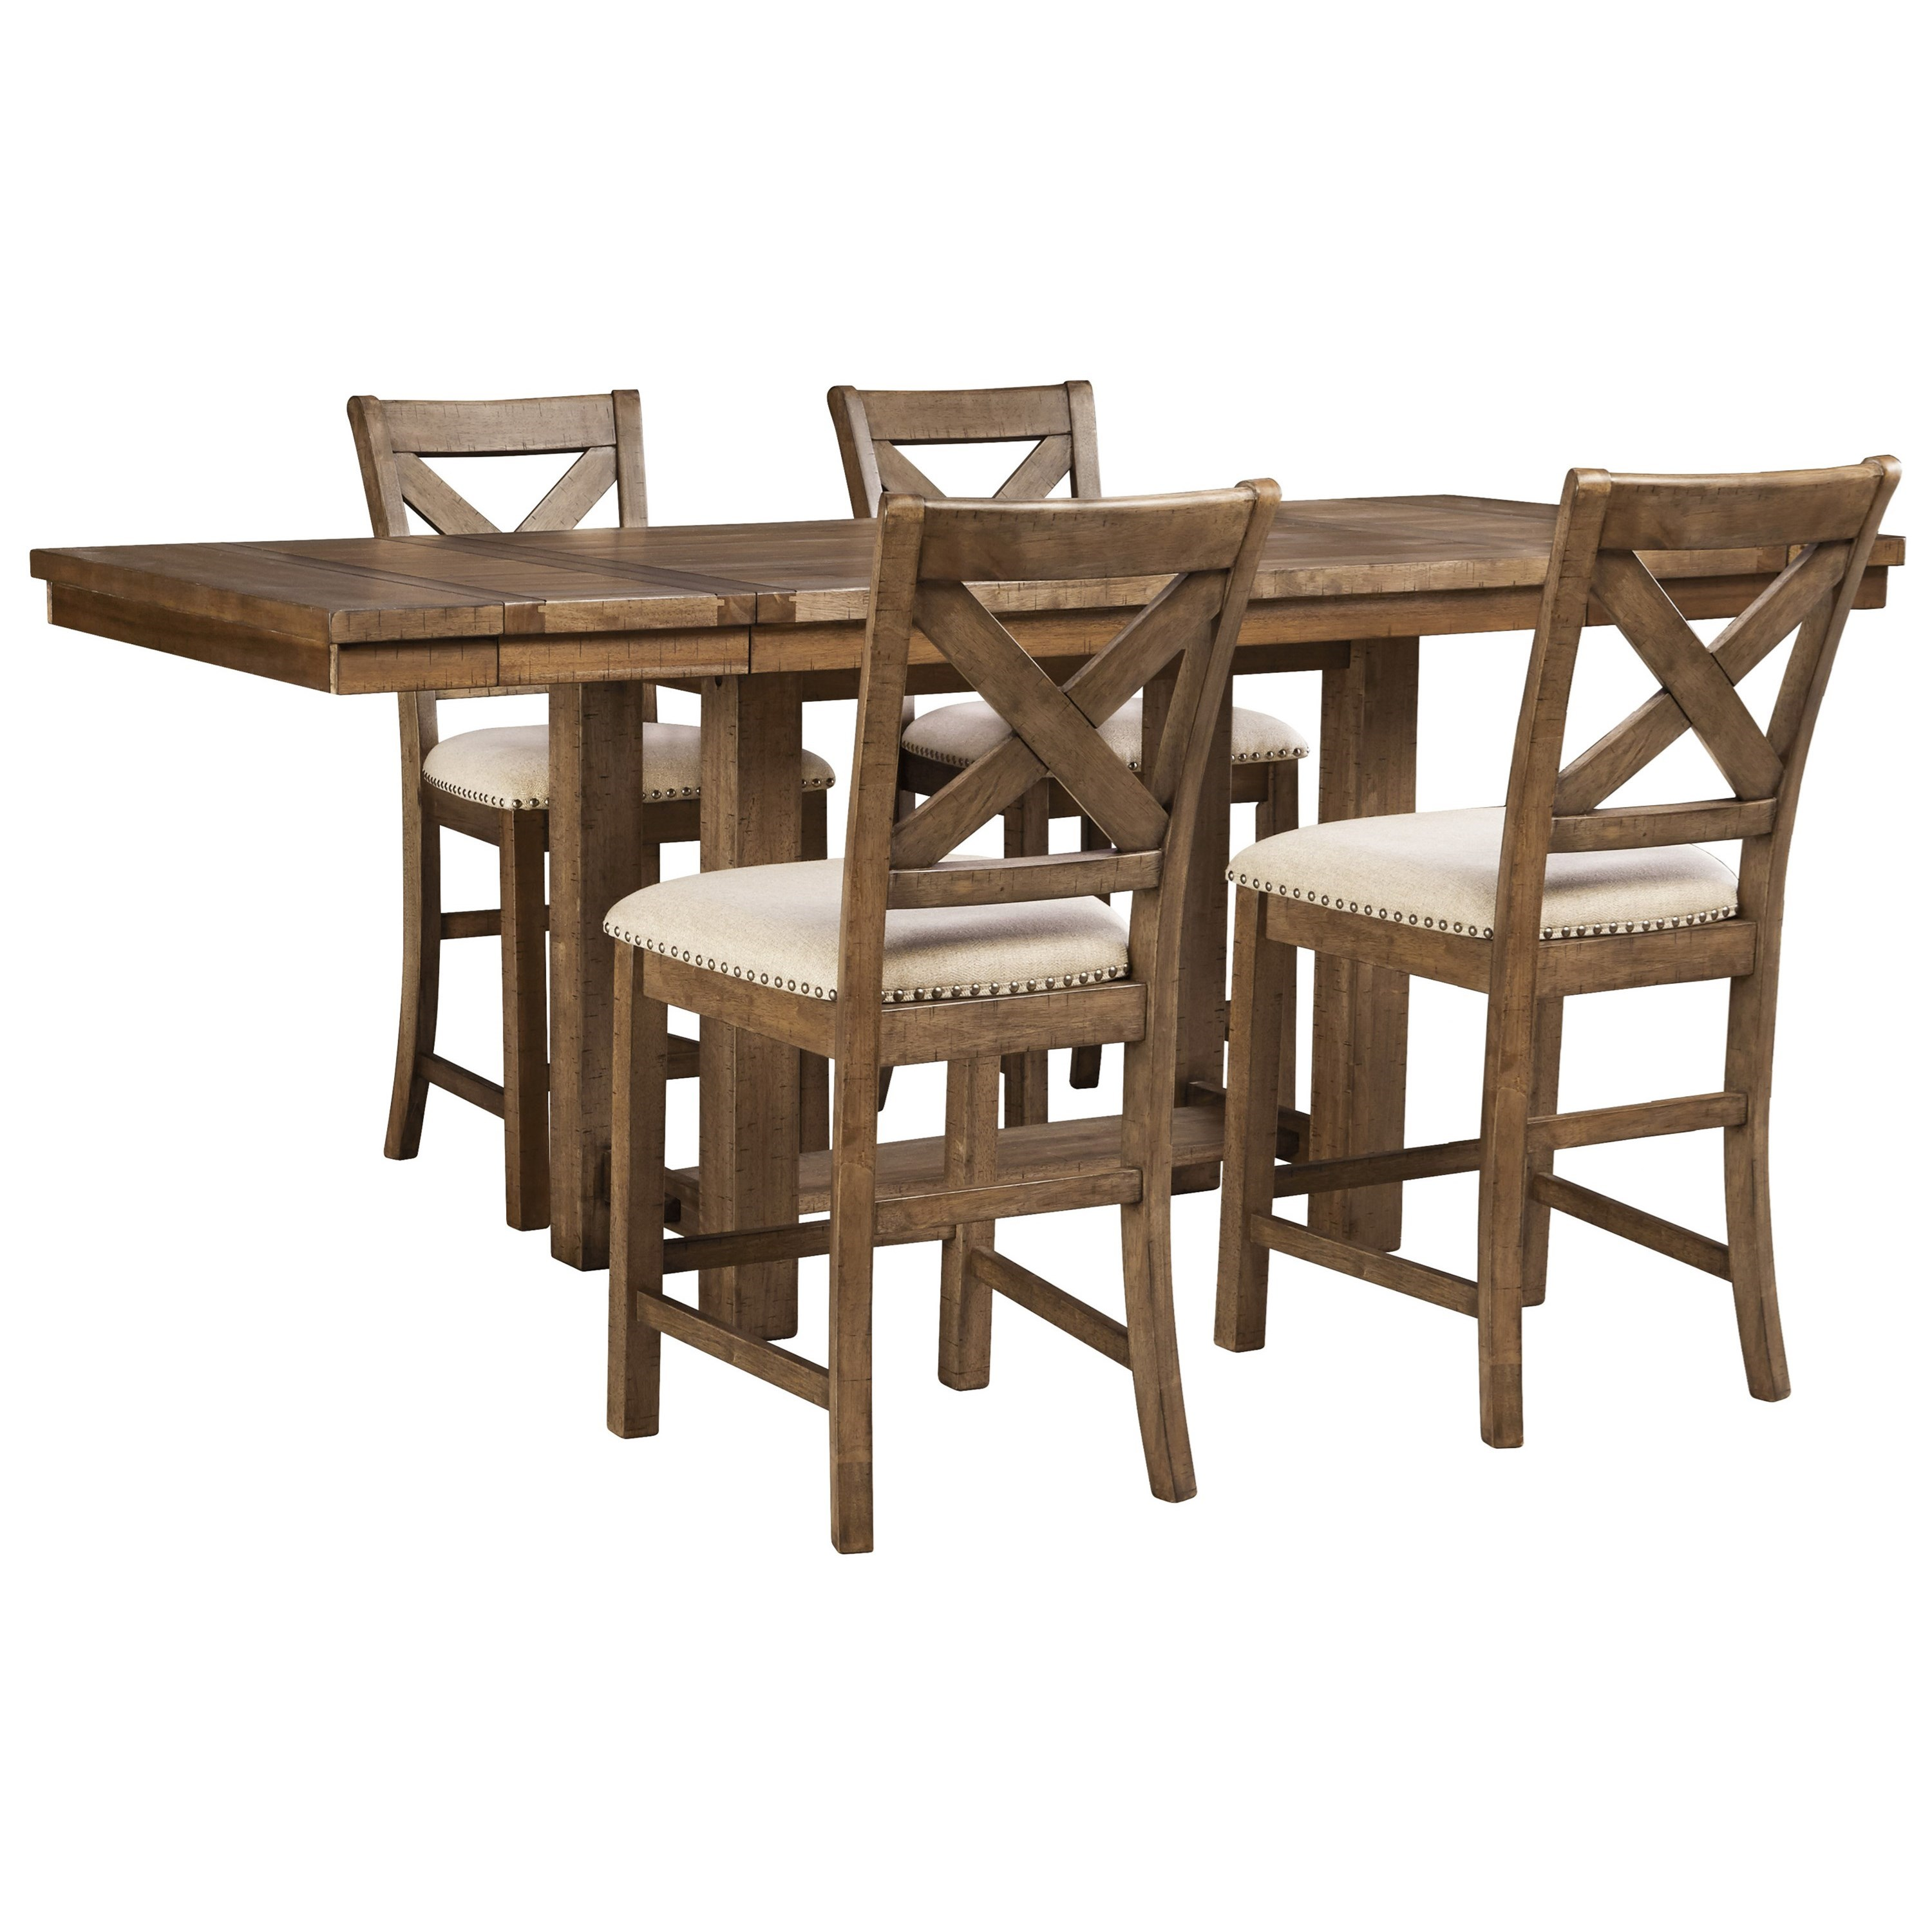 Moriville 5-Piece Dining Set by Signature Design by Ashley at HomeWorld Furniture